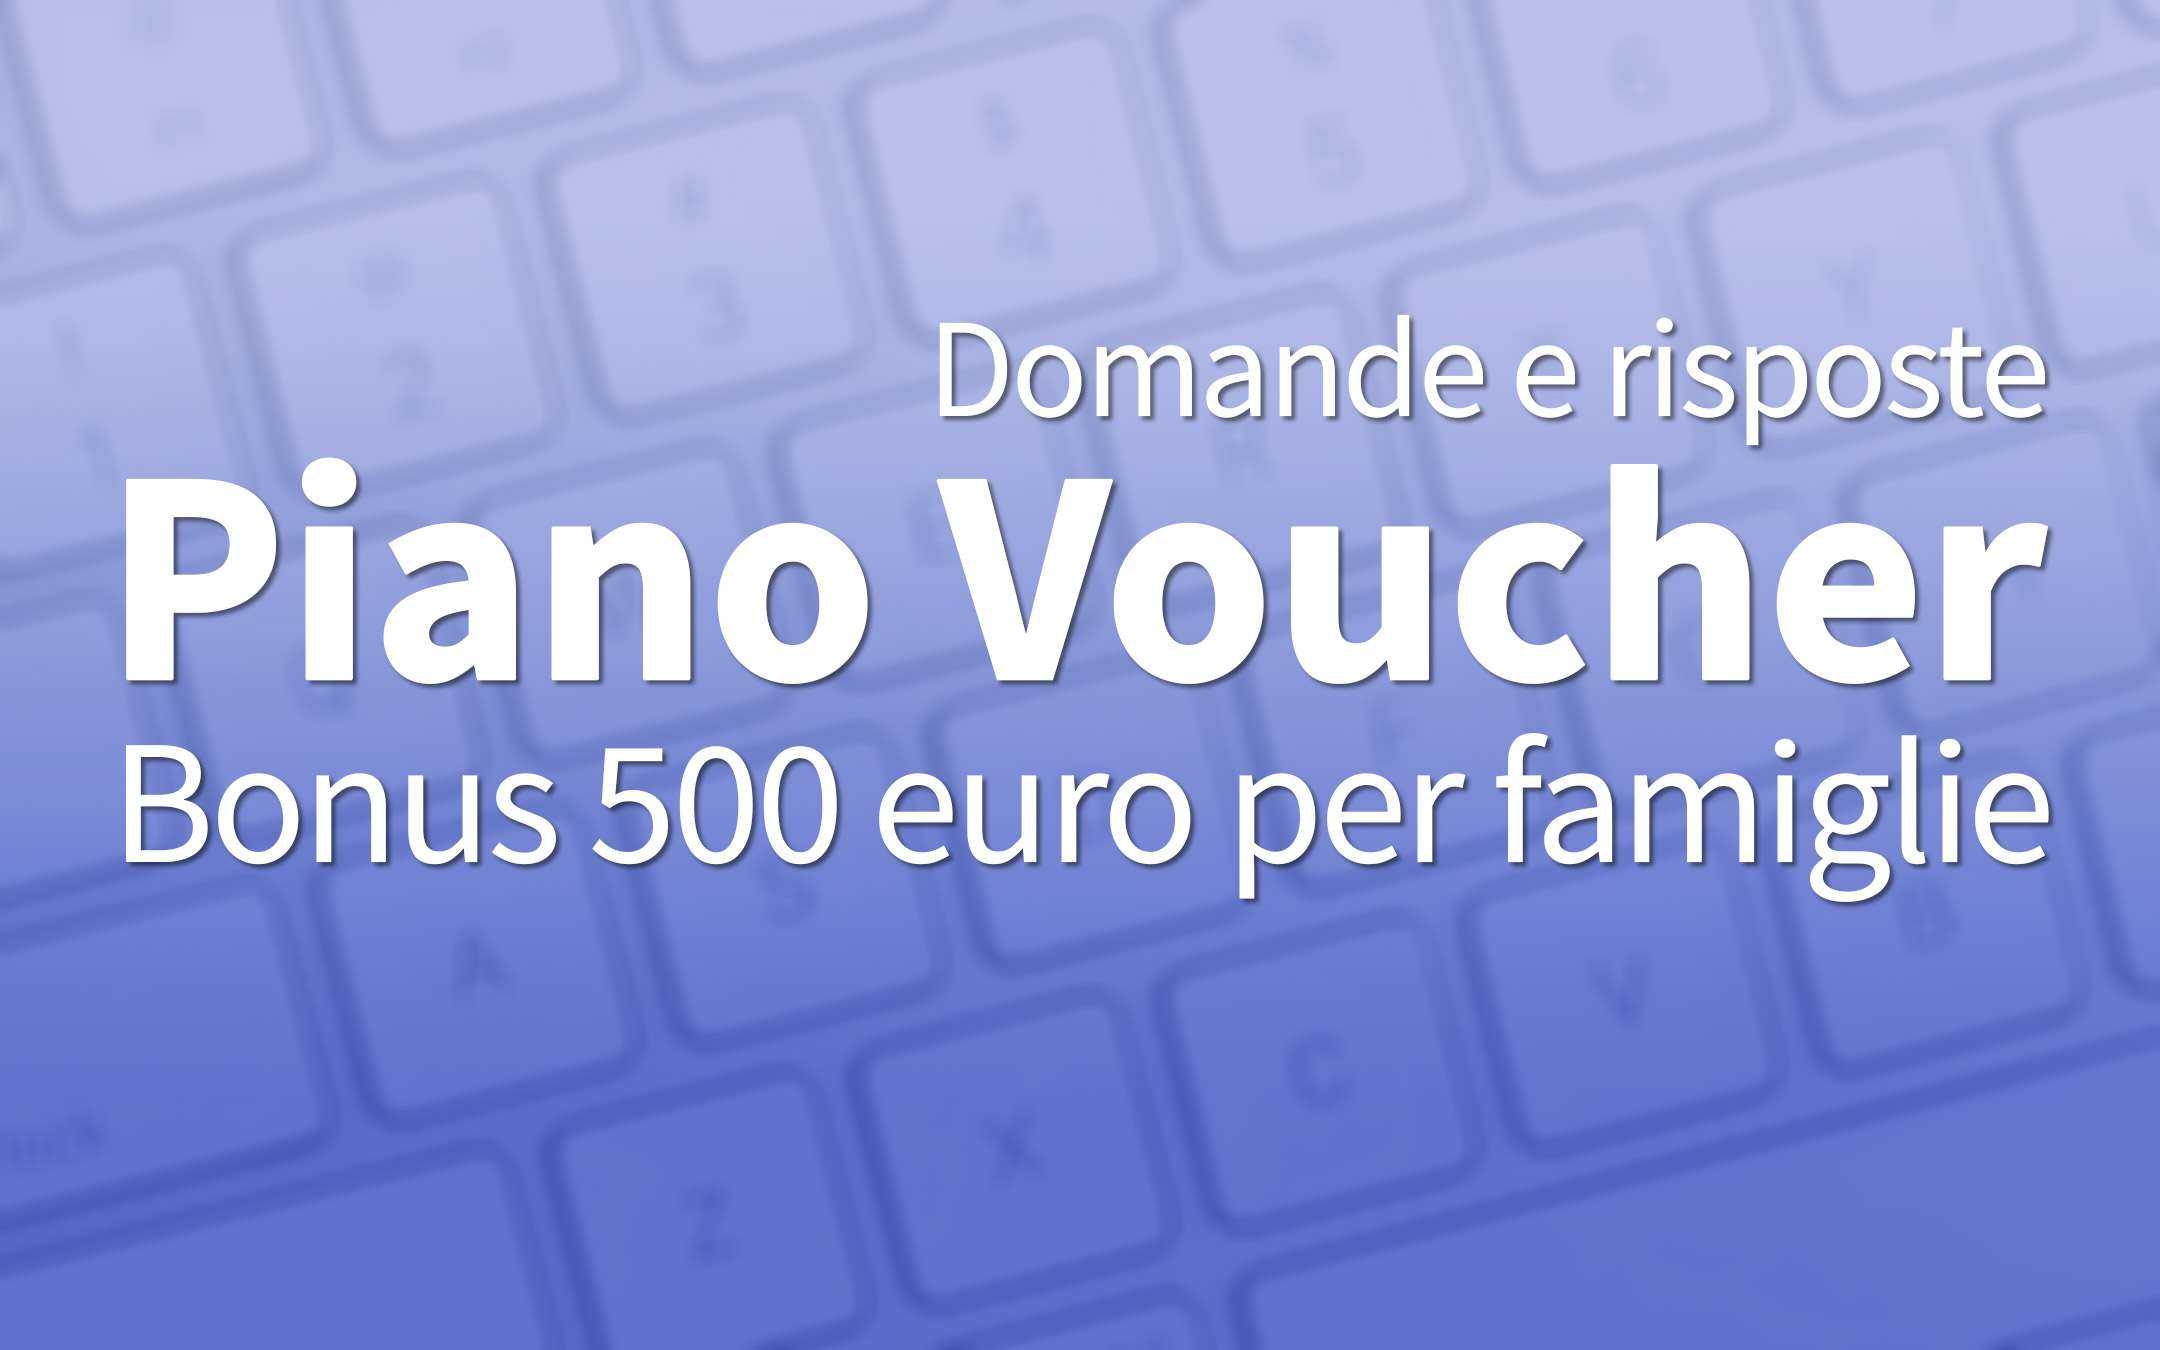 500 euro PC and Internet bonus: questions and answers